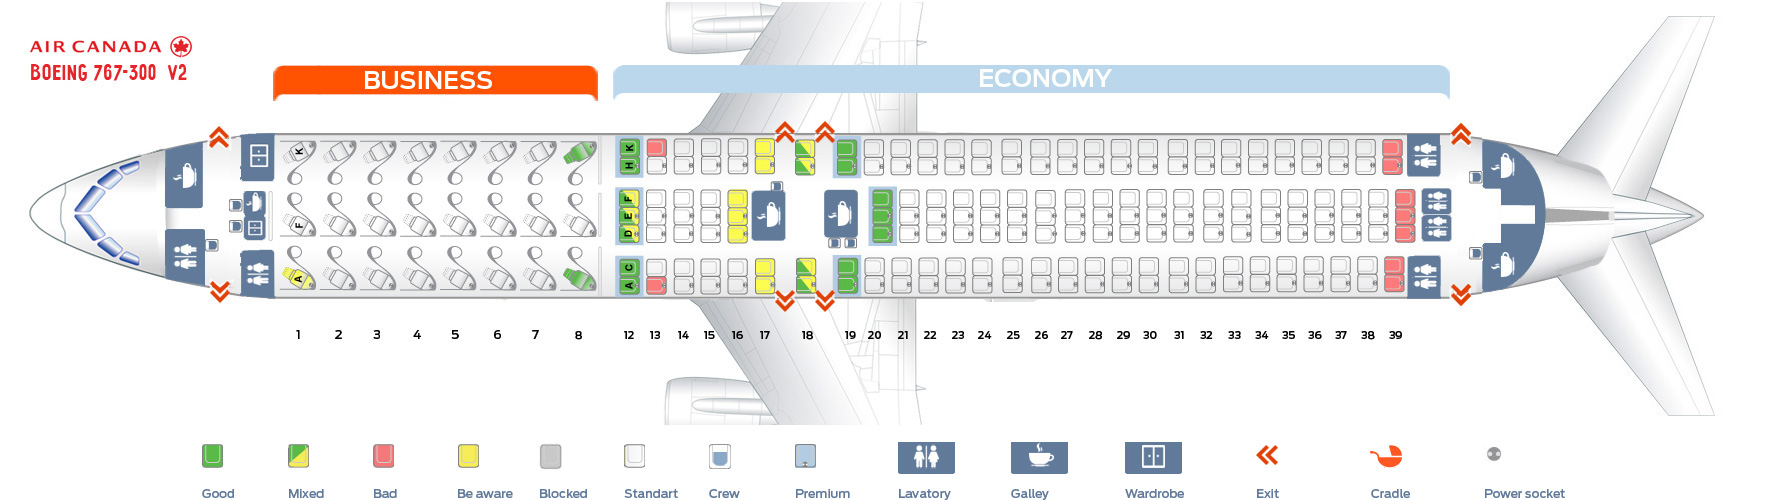 Seat map Air Canada Boeing-767-300 version 2